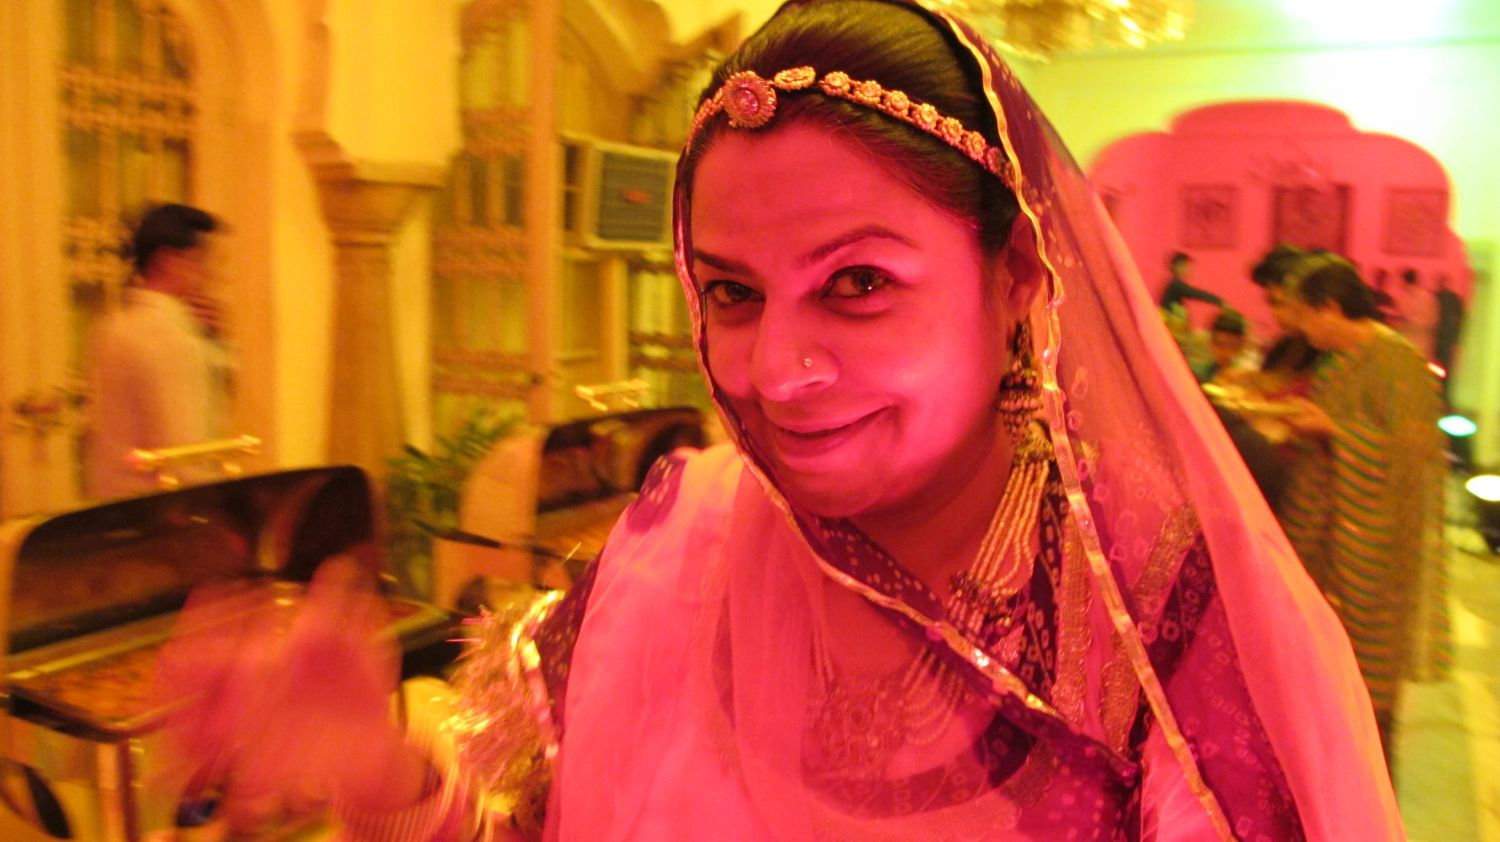 City palace of Jaipur | Royal family | Pink woman |Private party | ©sandrine cohen